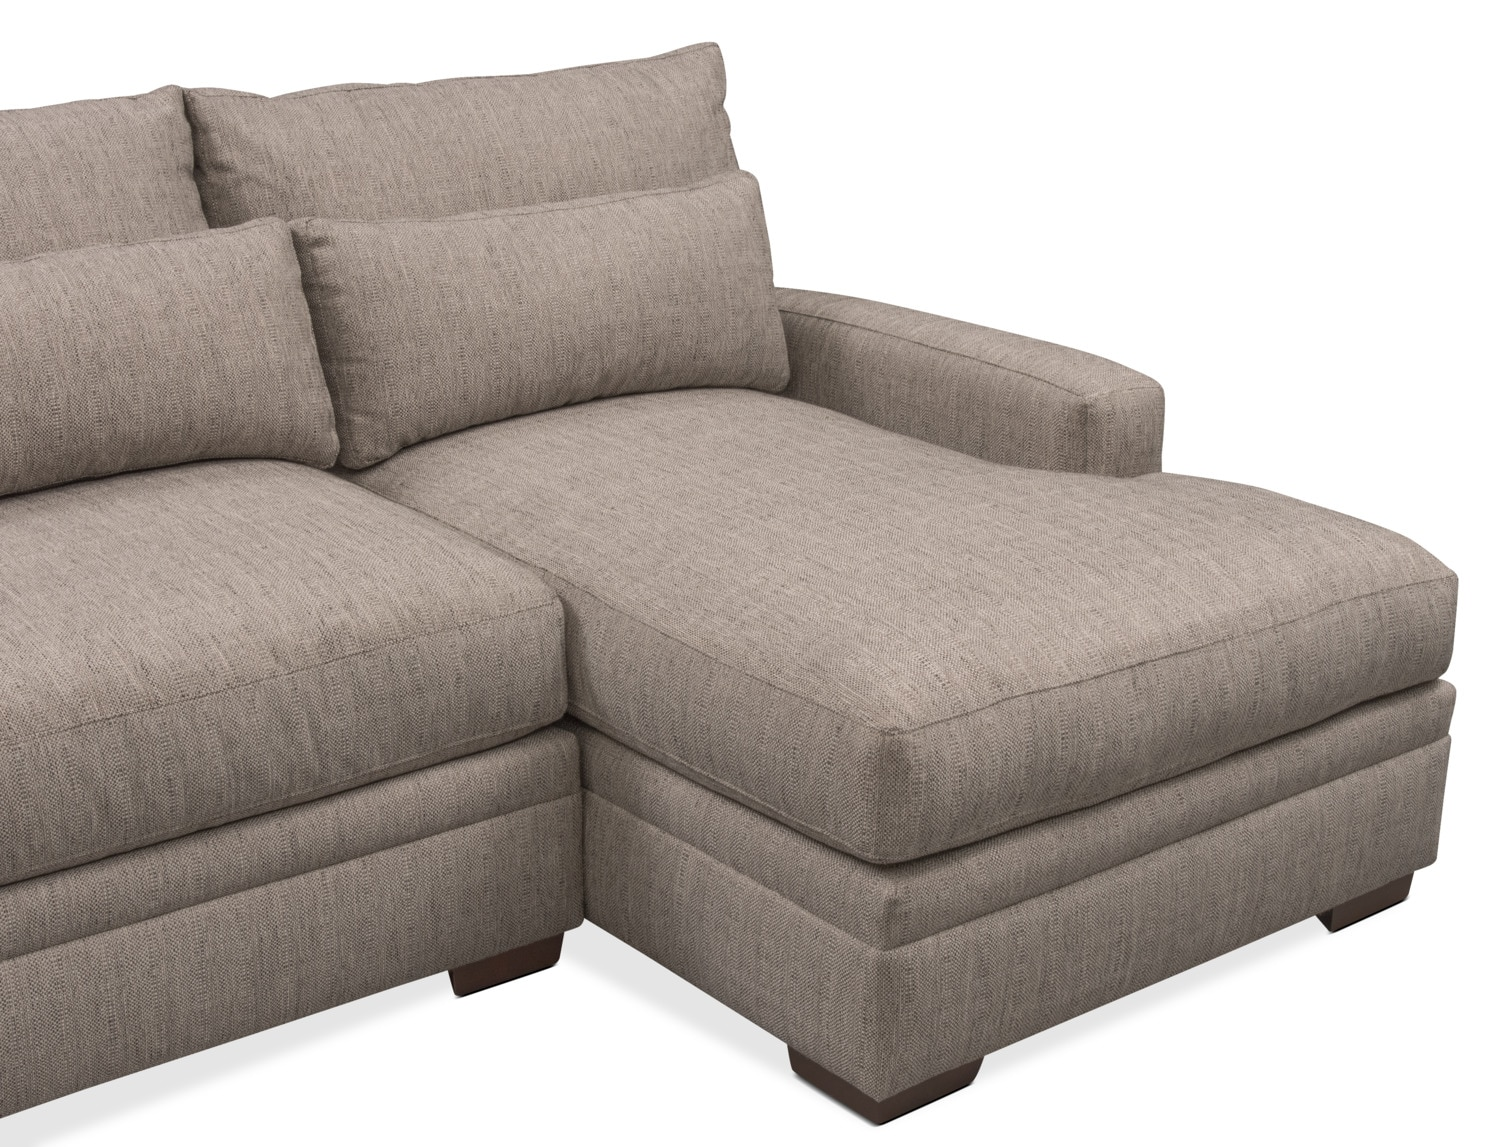 Winston comfort 4 piece sectional with right facing chaise for 4 piece sectional sofa with chaise